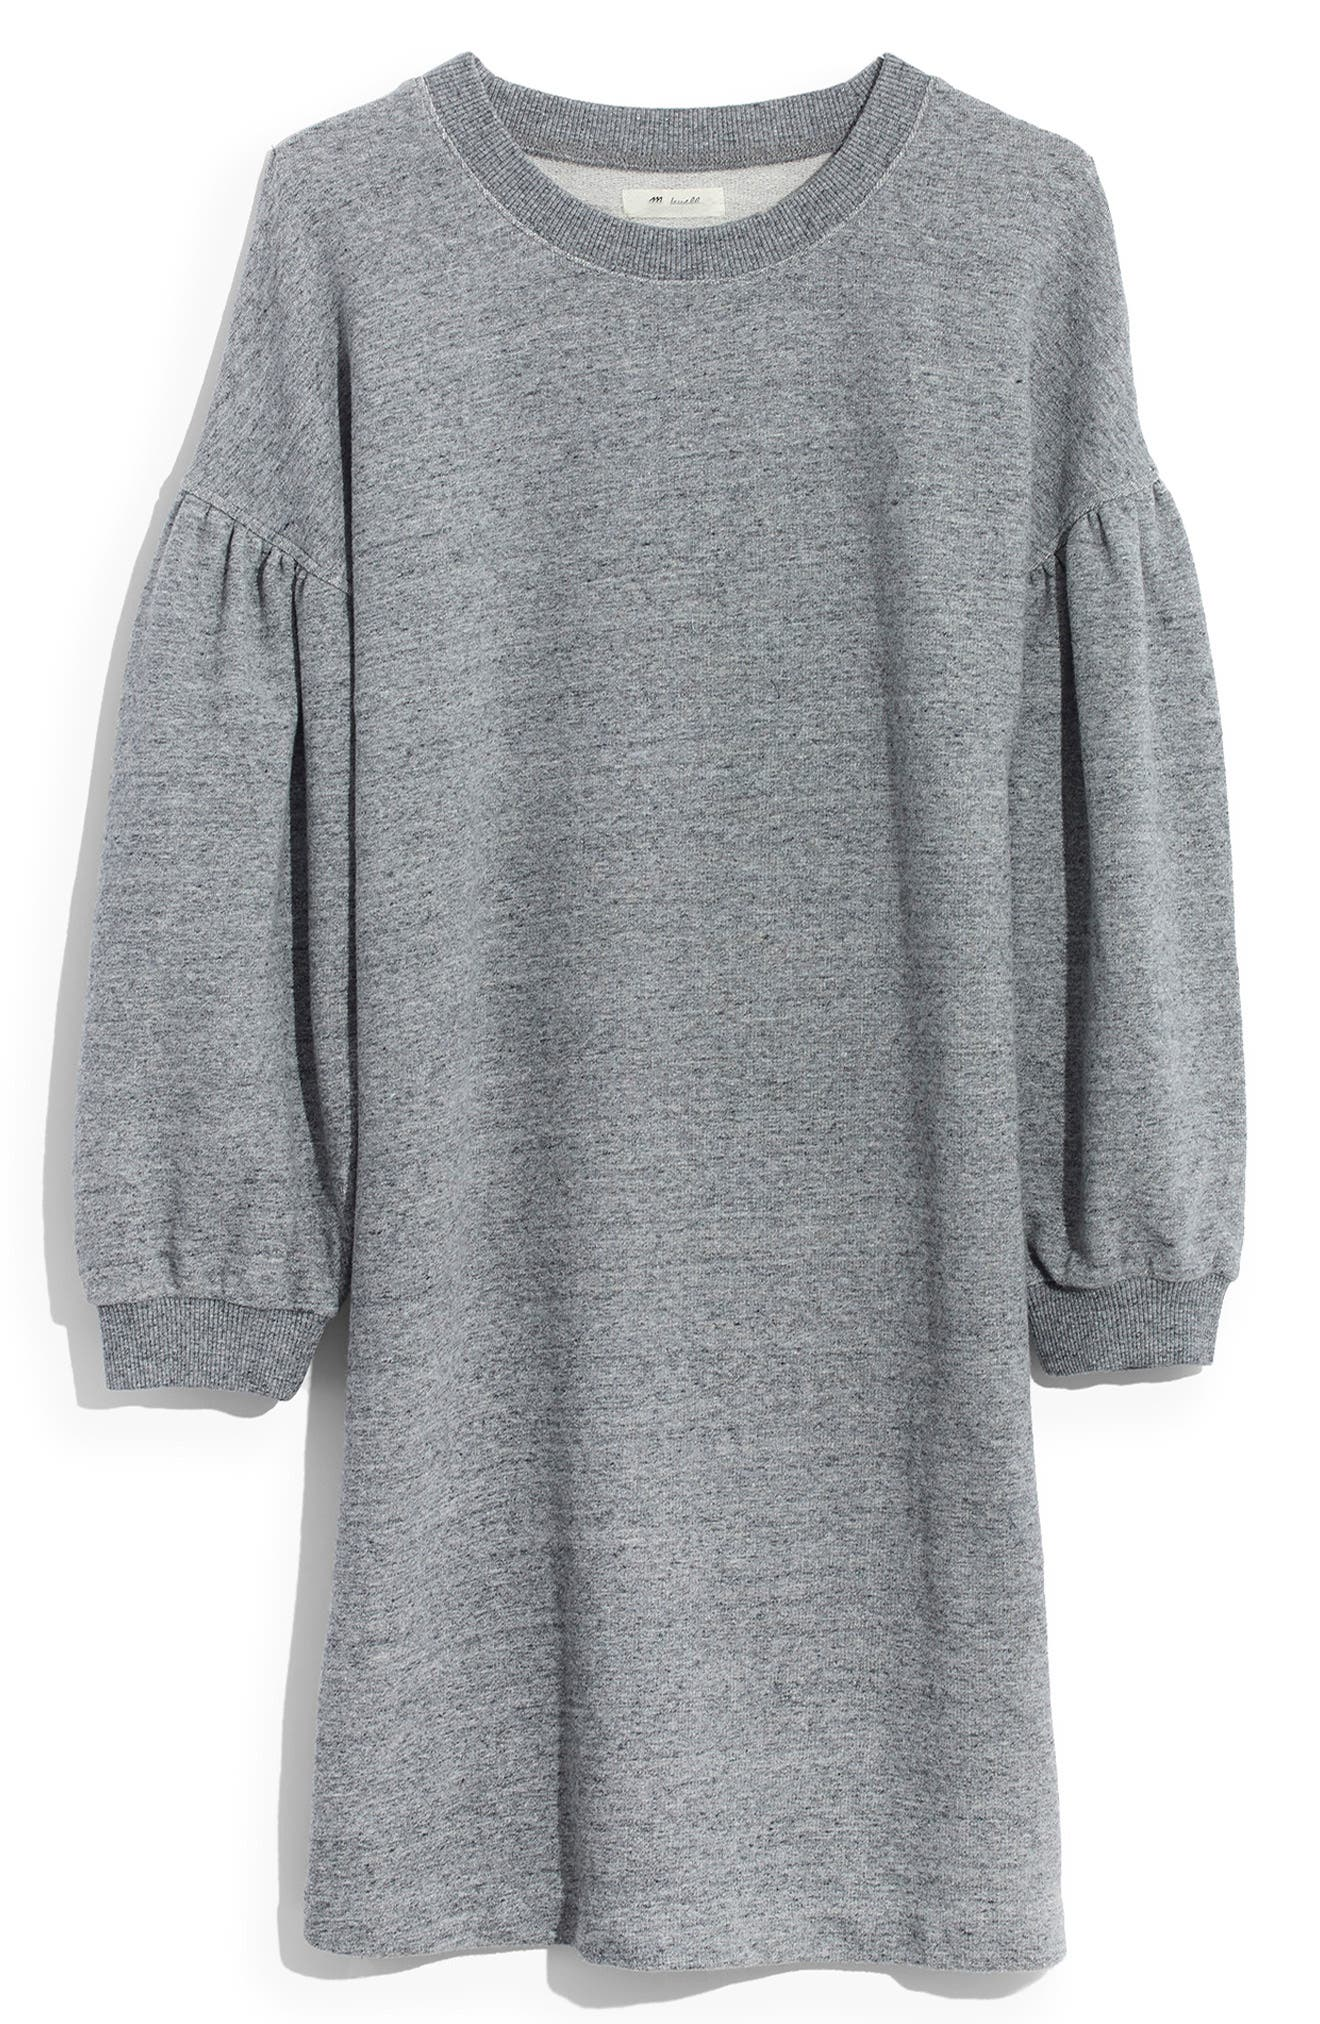 MADEWELL, Bubble Sleeve Sweatshirt Dress, Main thumbnail 1, color, 020